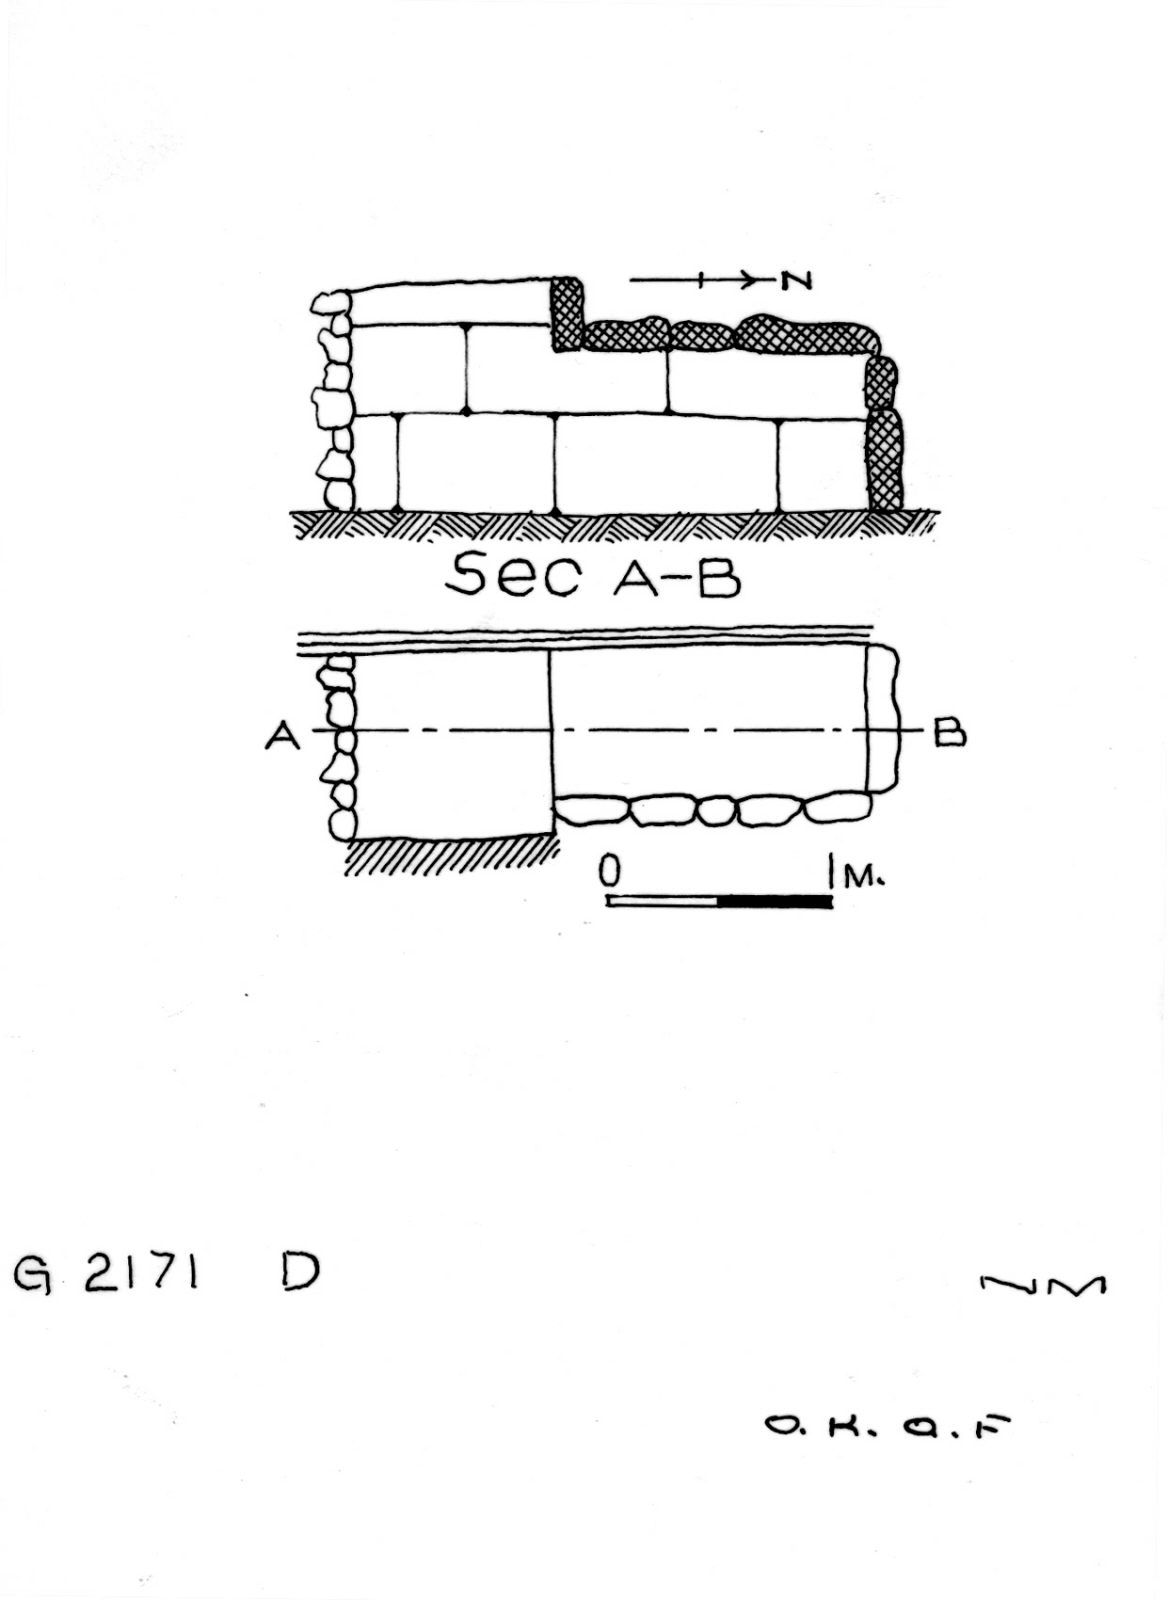 Maps and plans: G 2171, Shaft D